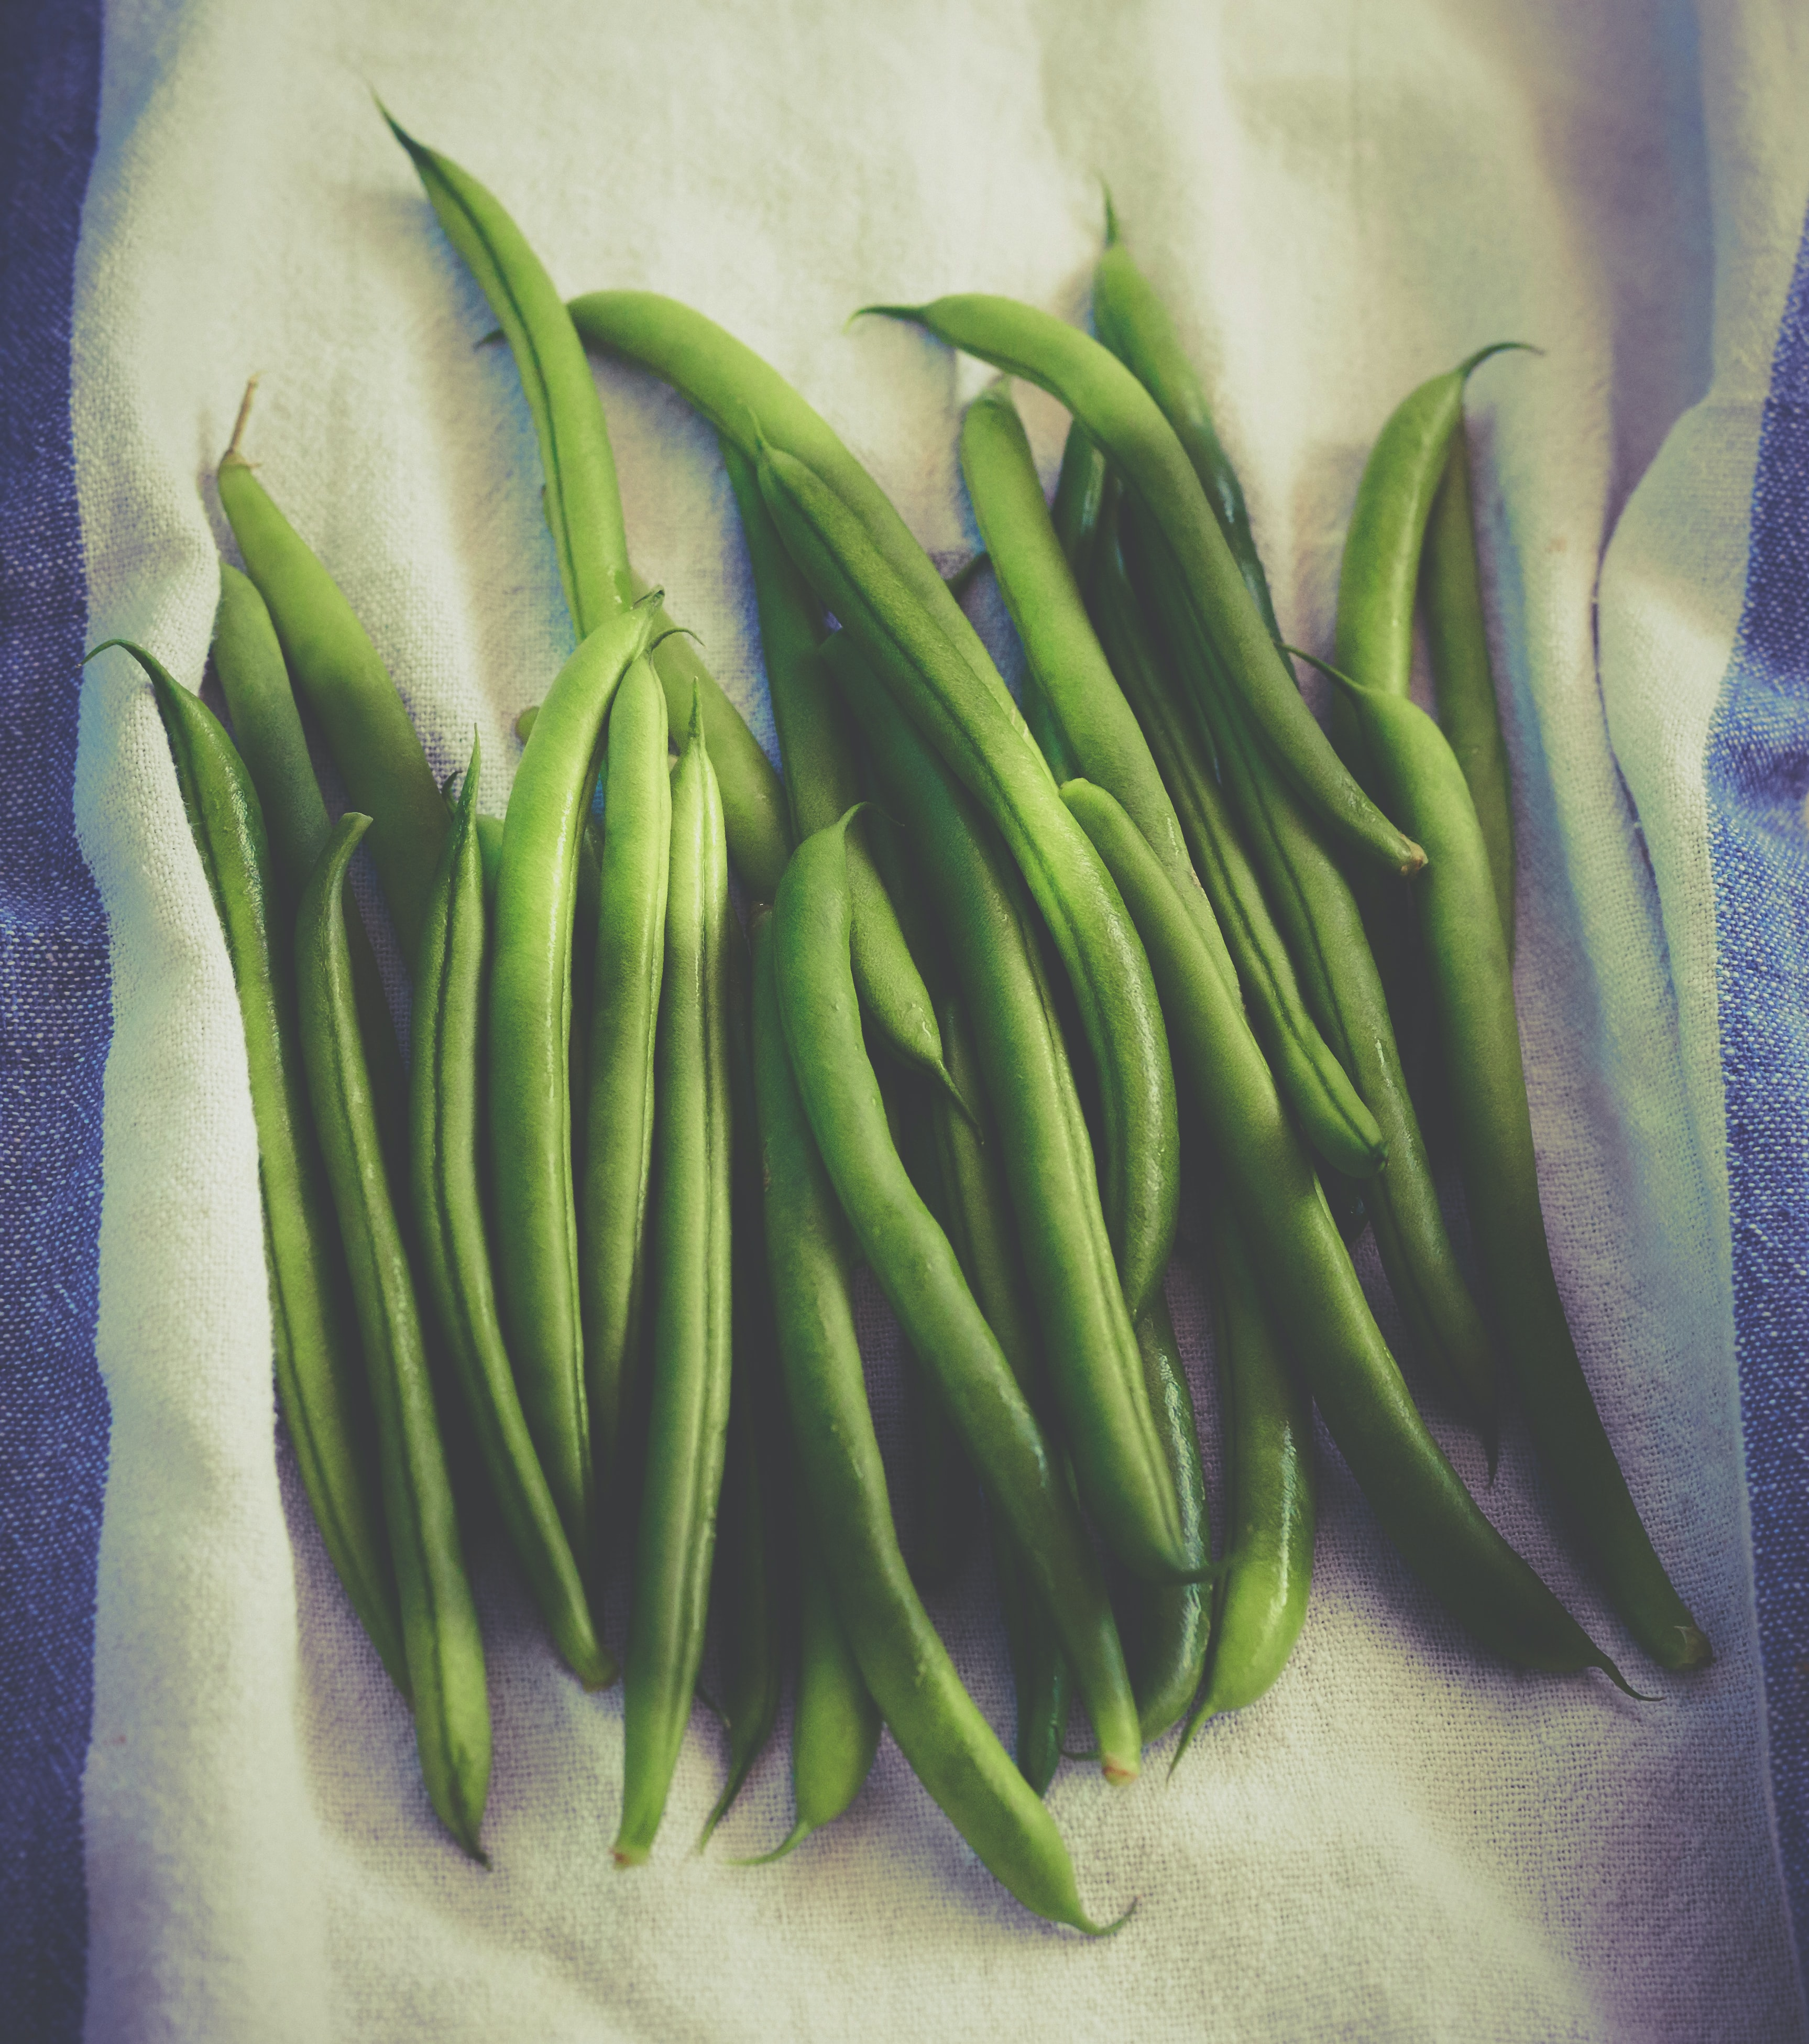 Bunch of freshly washed green beans